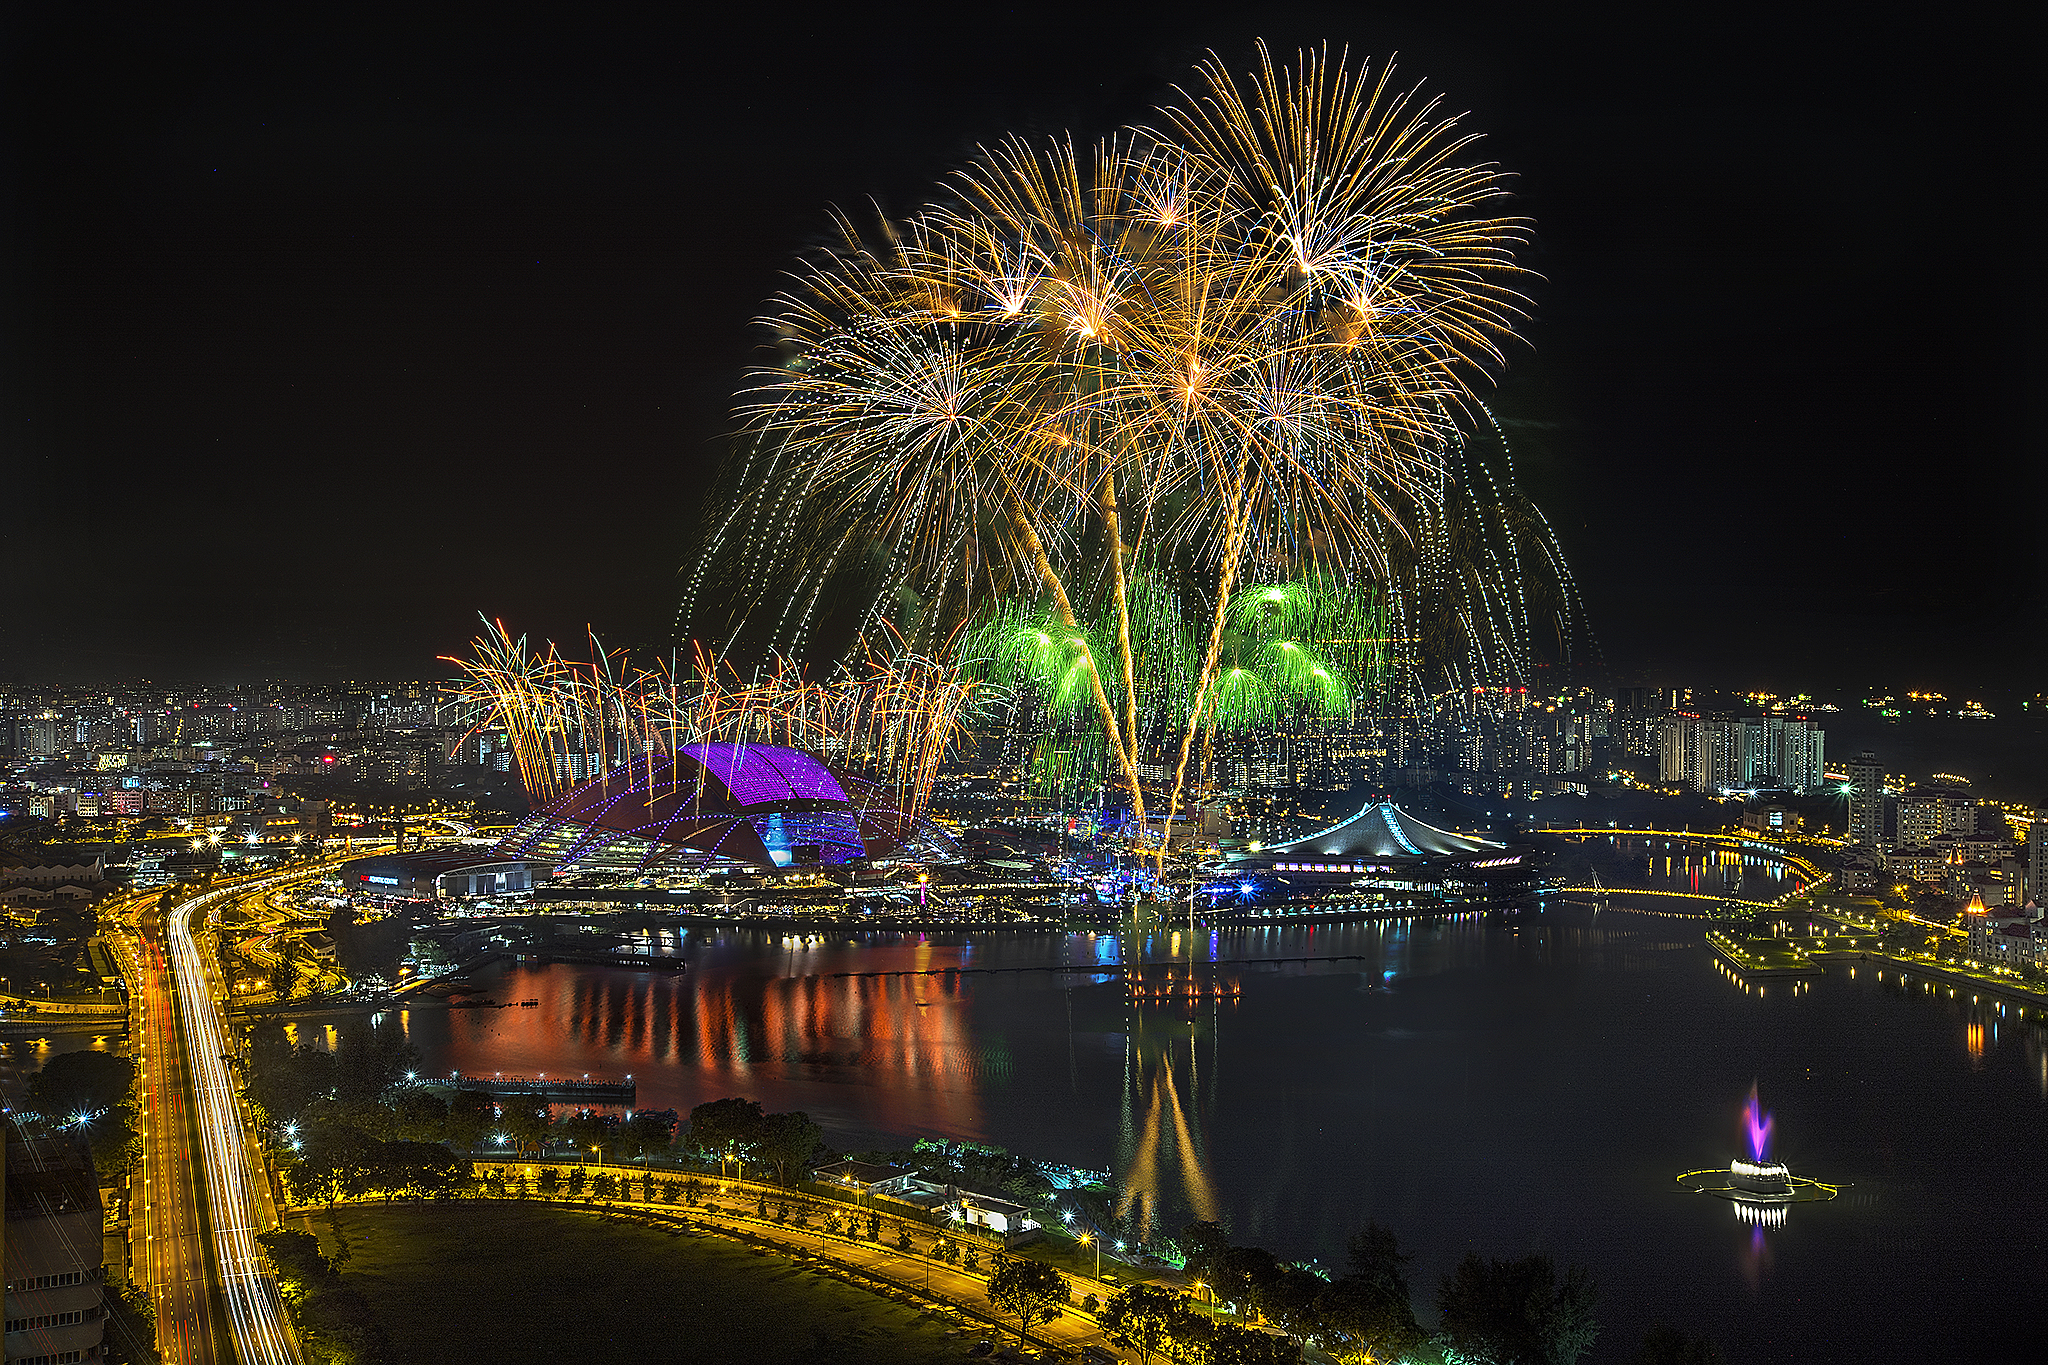 SEA Games Closing Fireworks